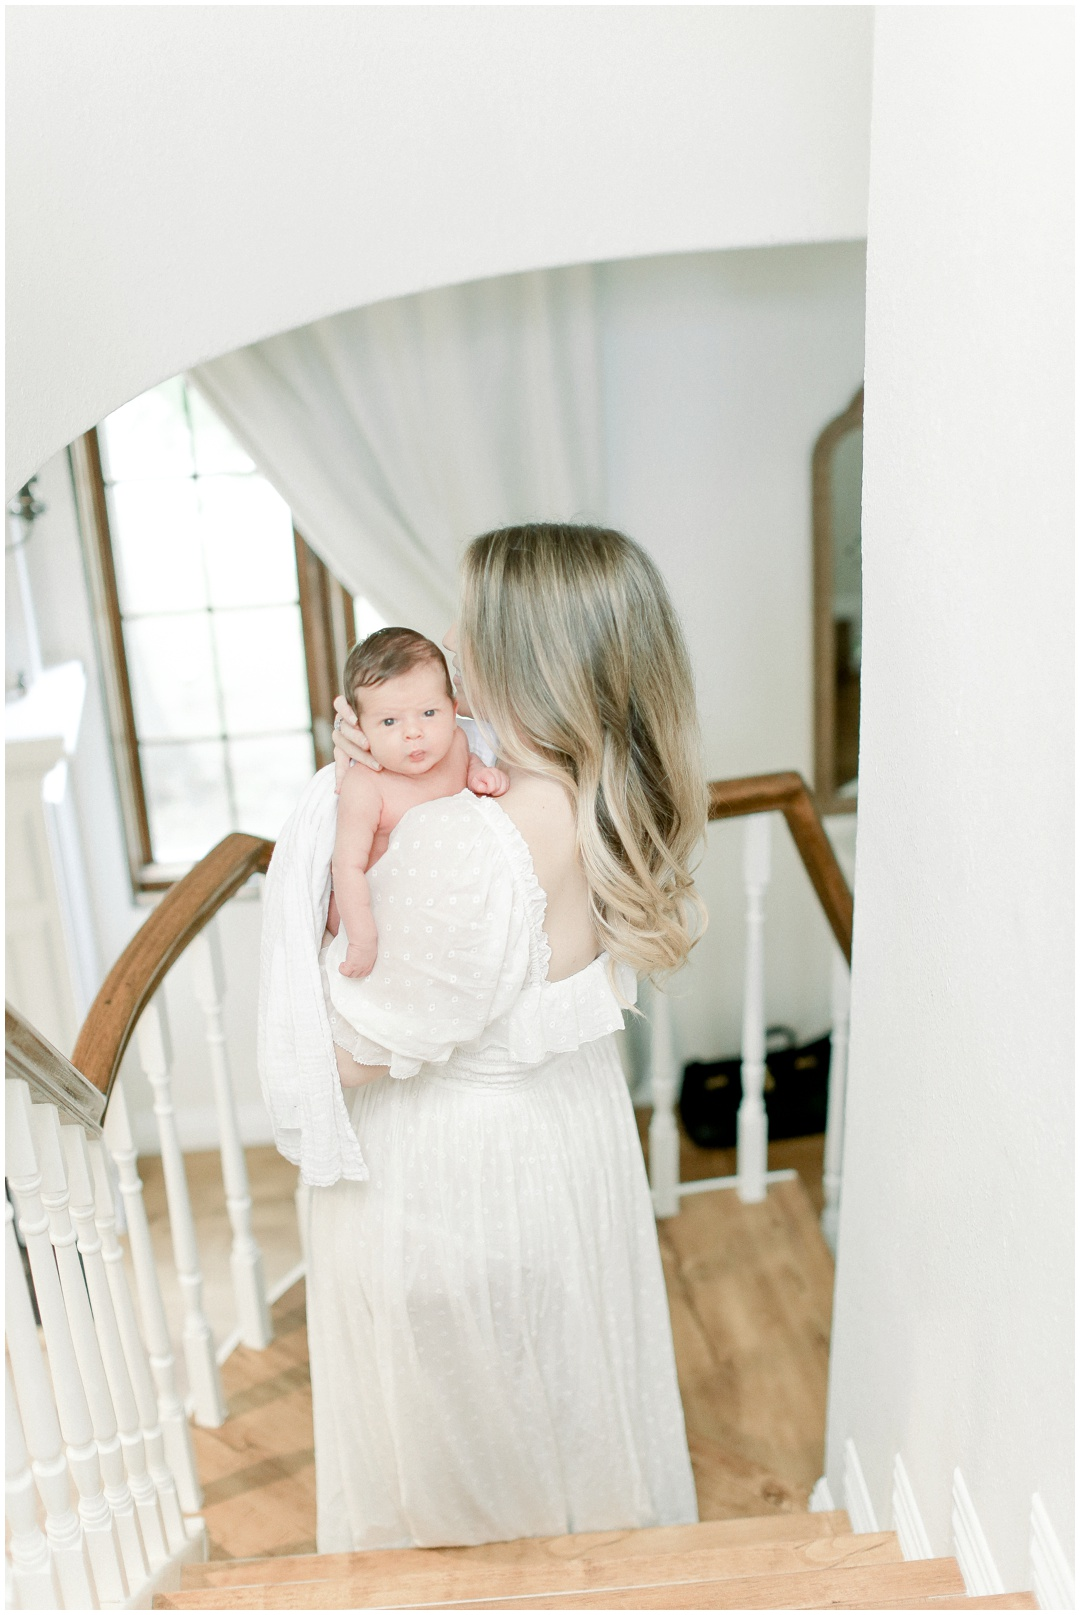 Newport_Beach_Newborn_Light_Airy_Natural_Photographer_Newport_Beach_Photographer_Orange_County_Family_Photographer_Cori_Kleckner_Photography_Huntington_Beach_Photographer_Family_OC_Maternity_Breanna_Santillo__3656.jpg